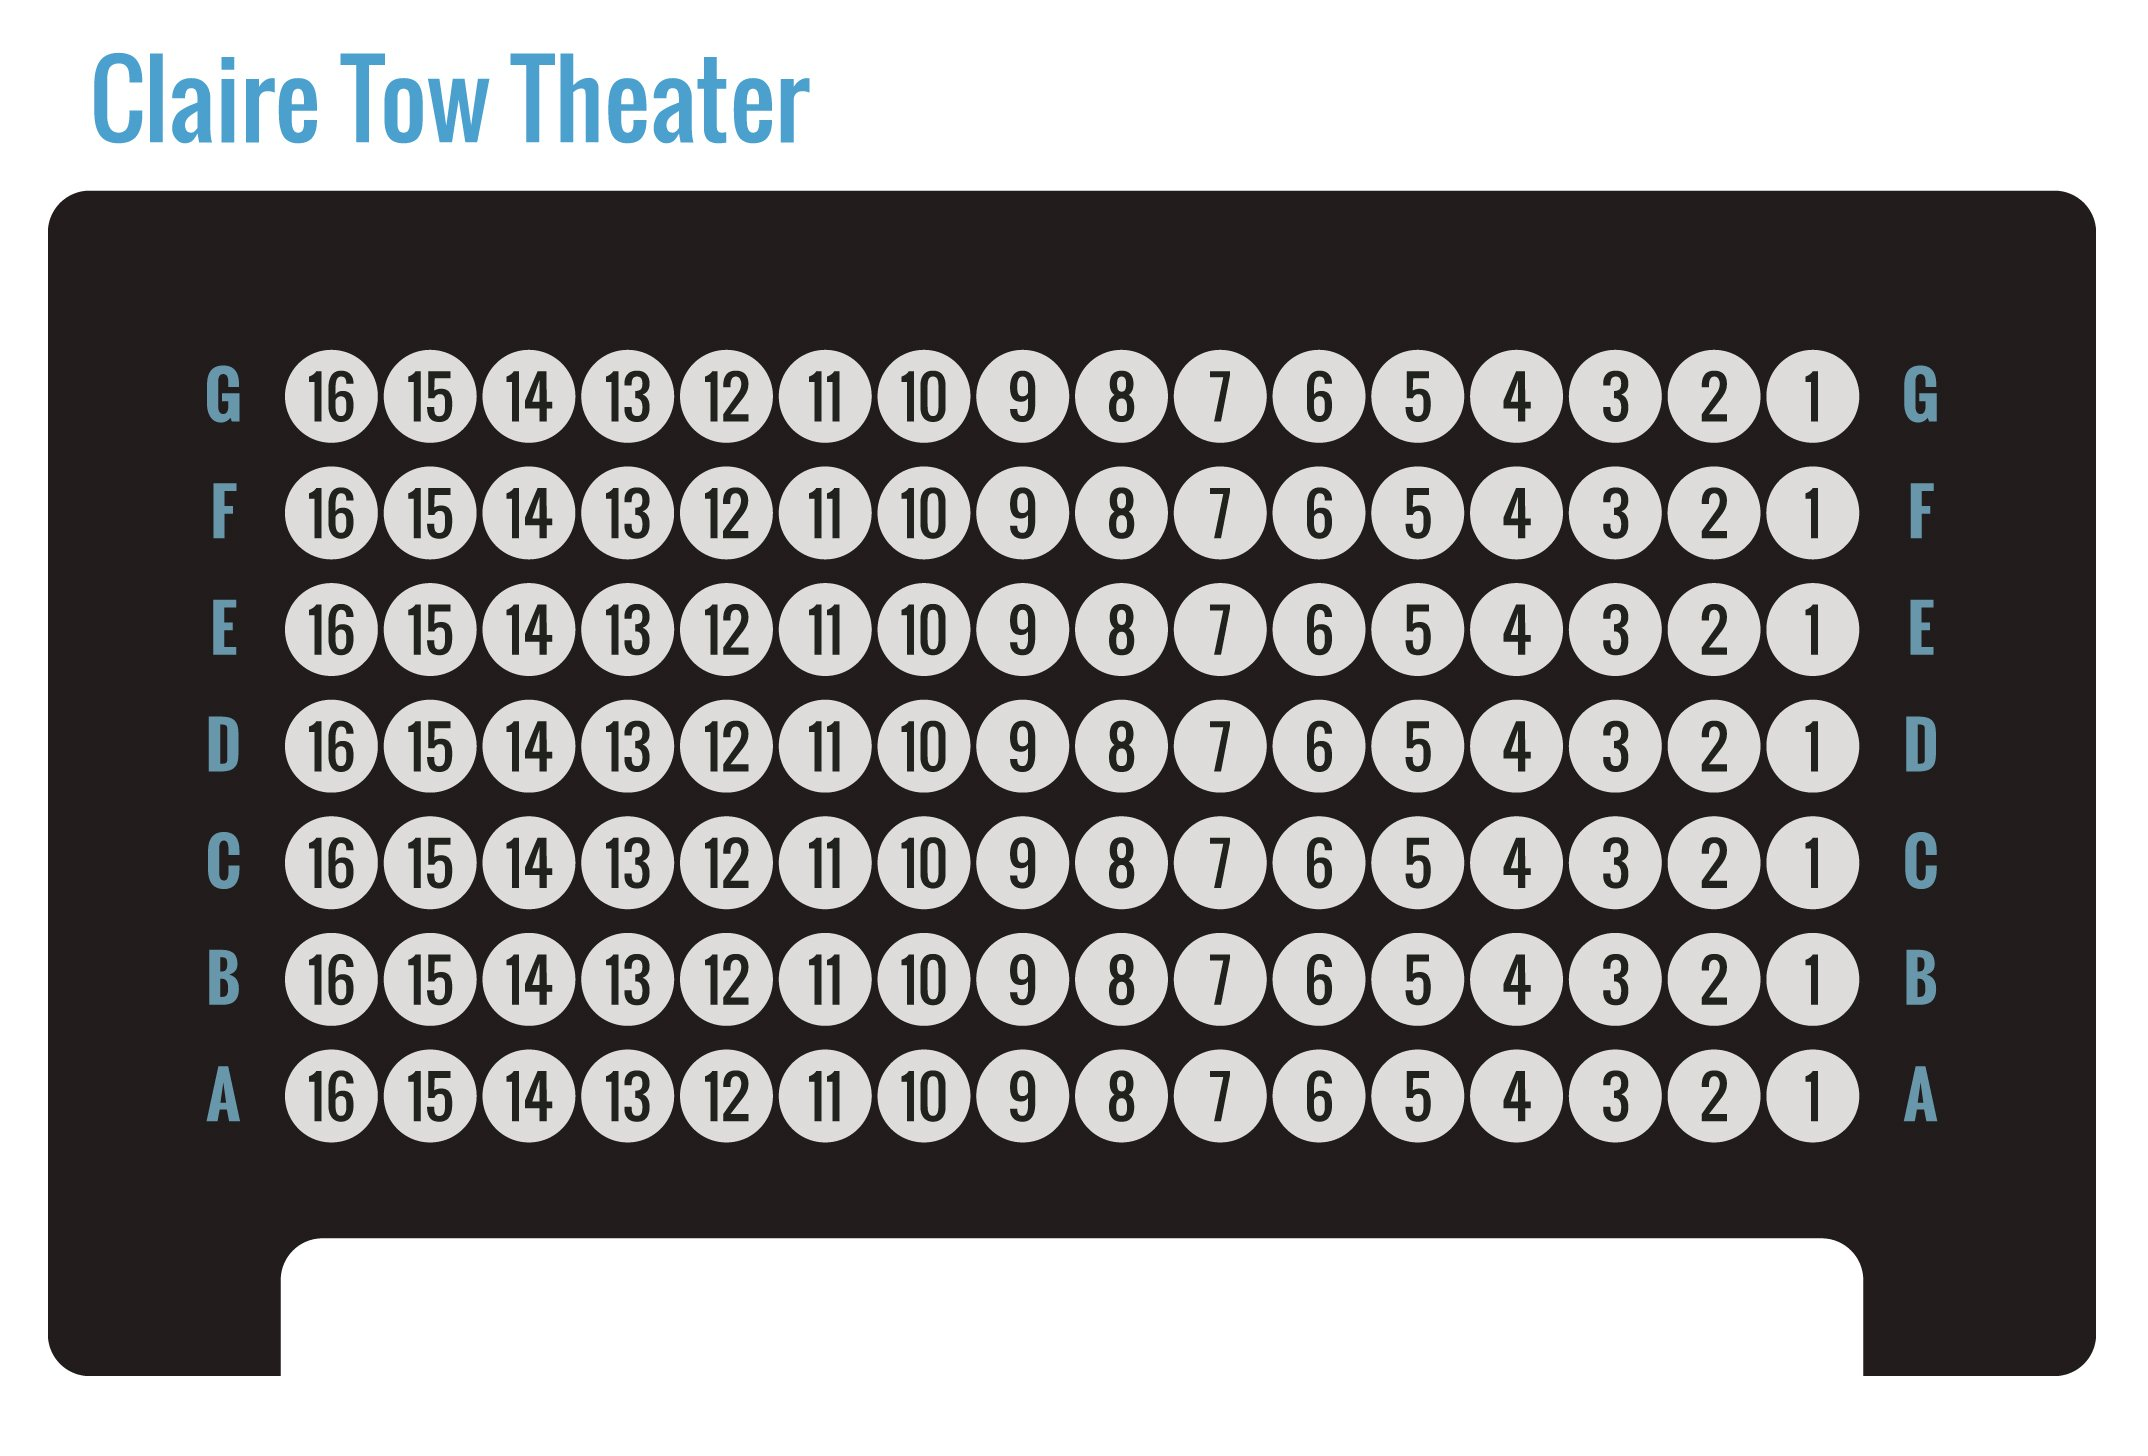 Claire Tow Theater General Seating Chart